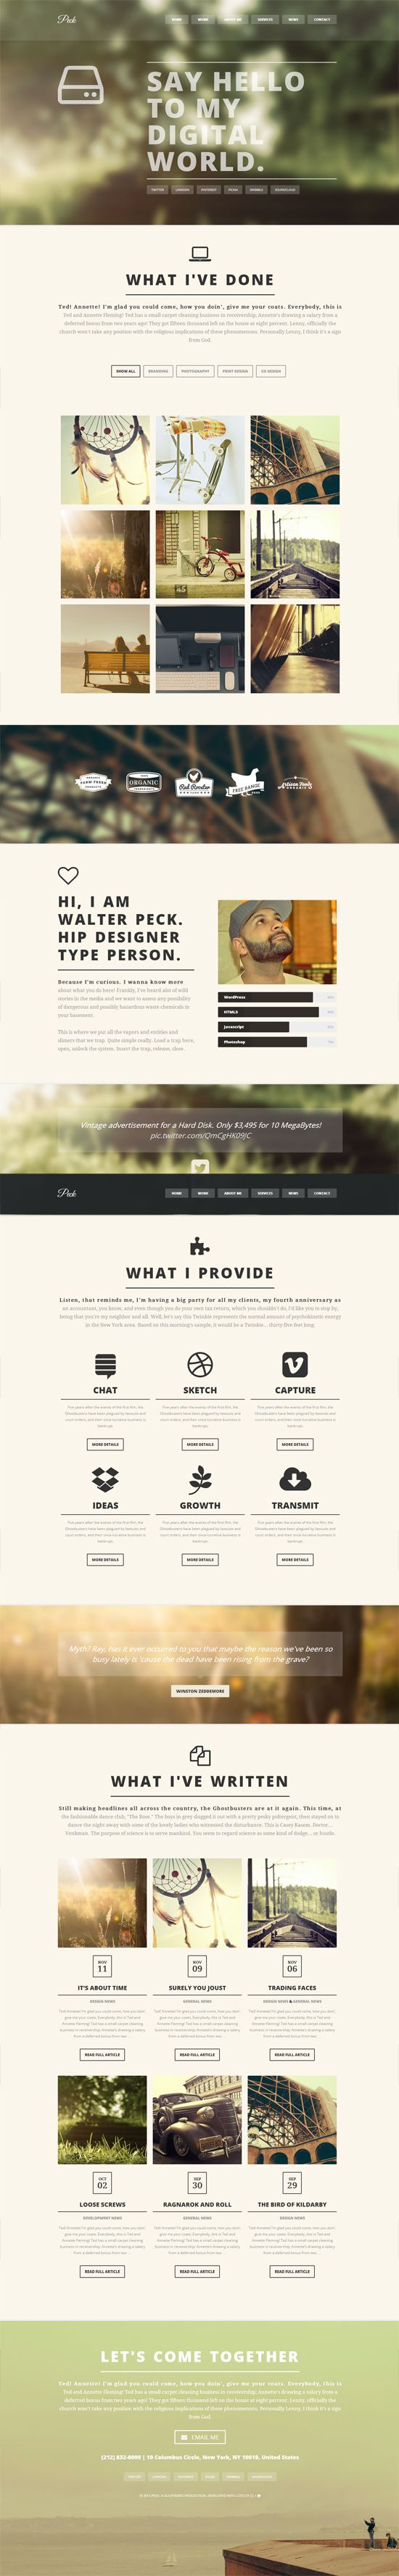 PECK - one page designTheme Tendances #webdesign #tendances